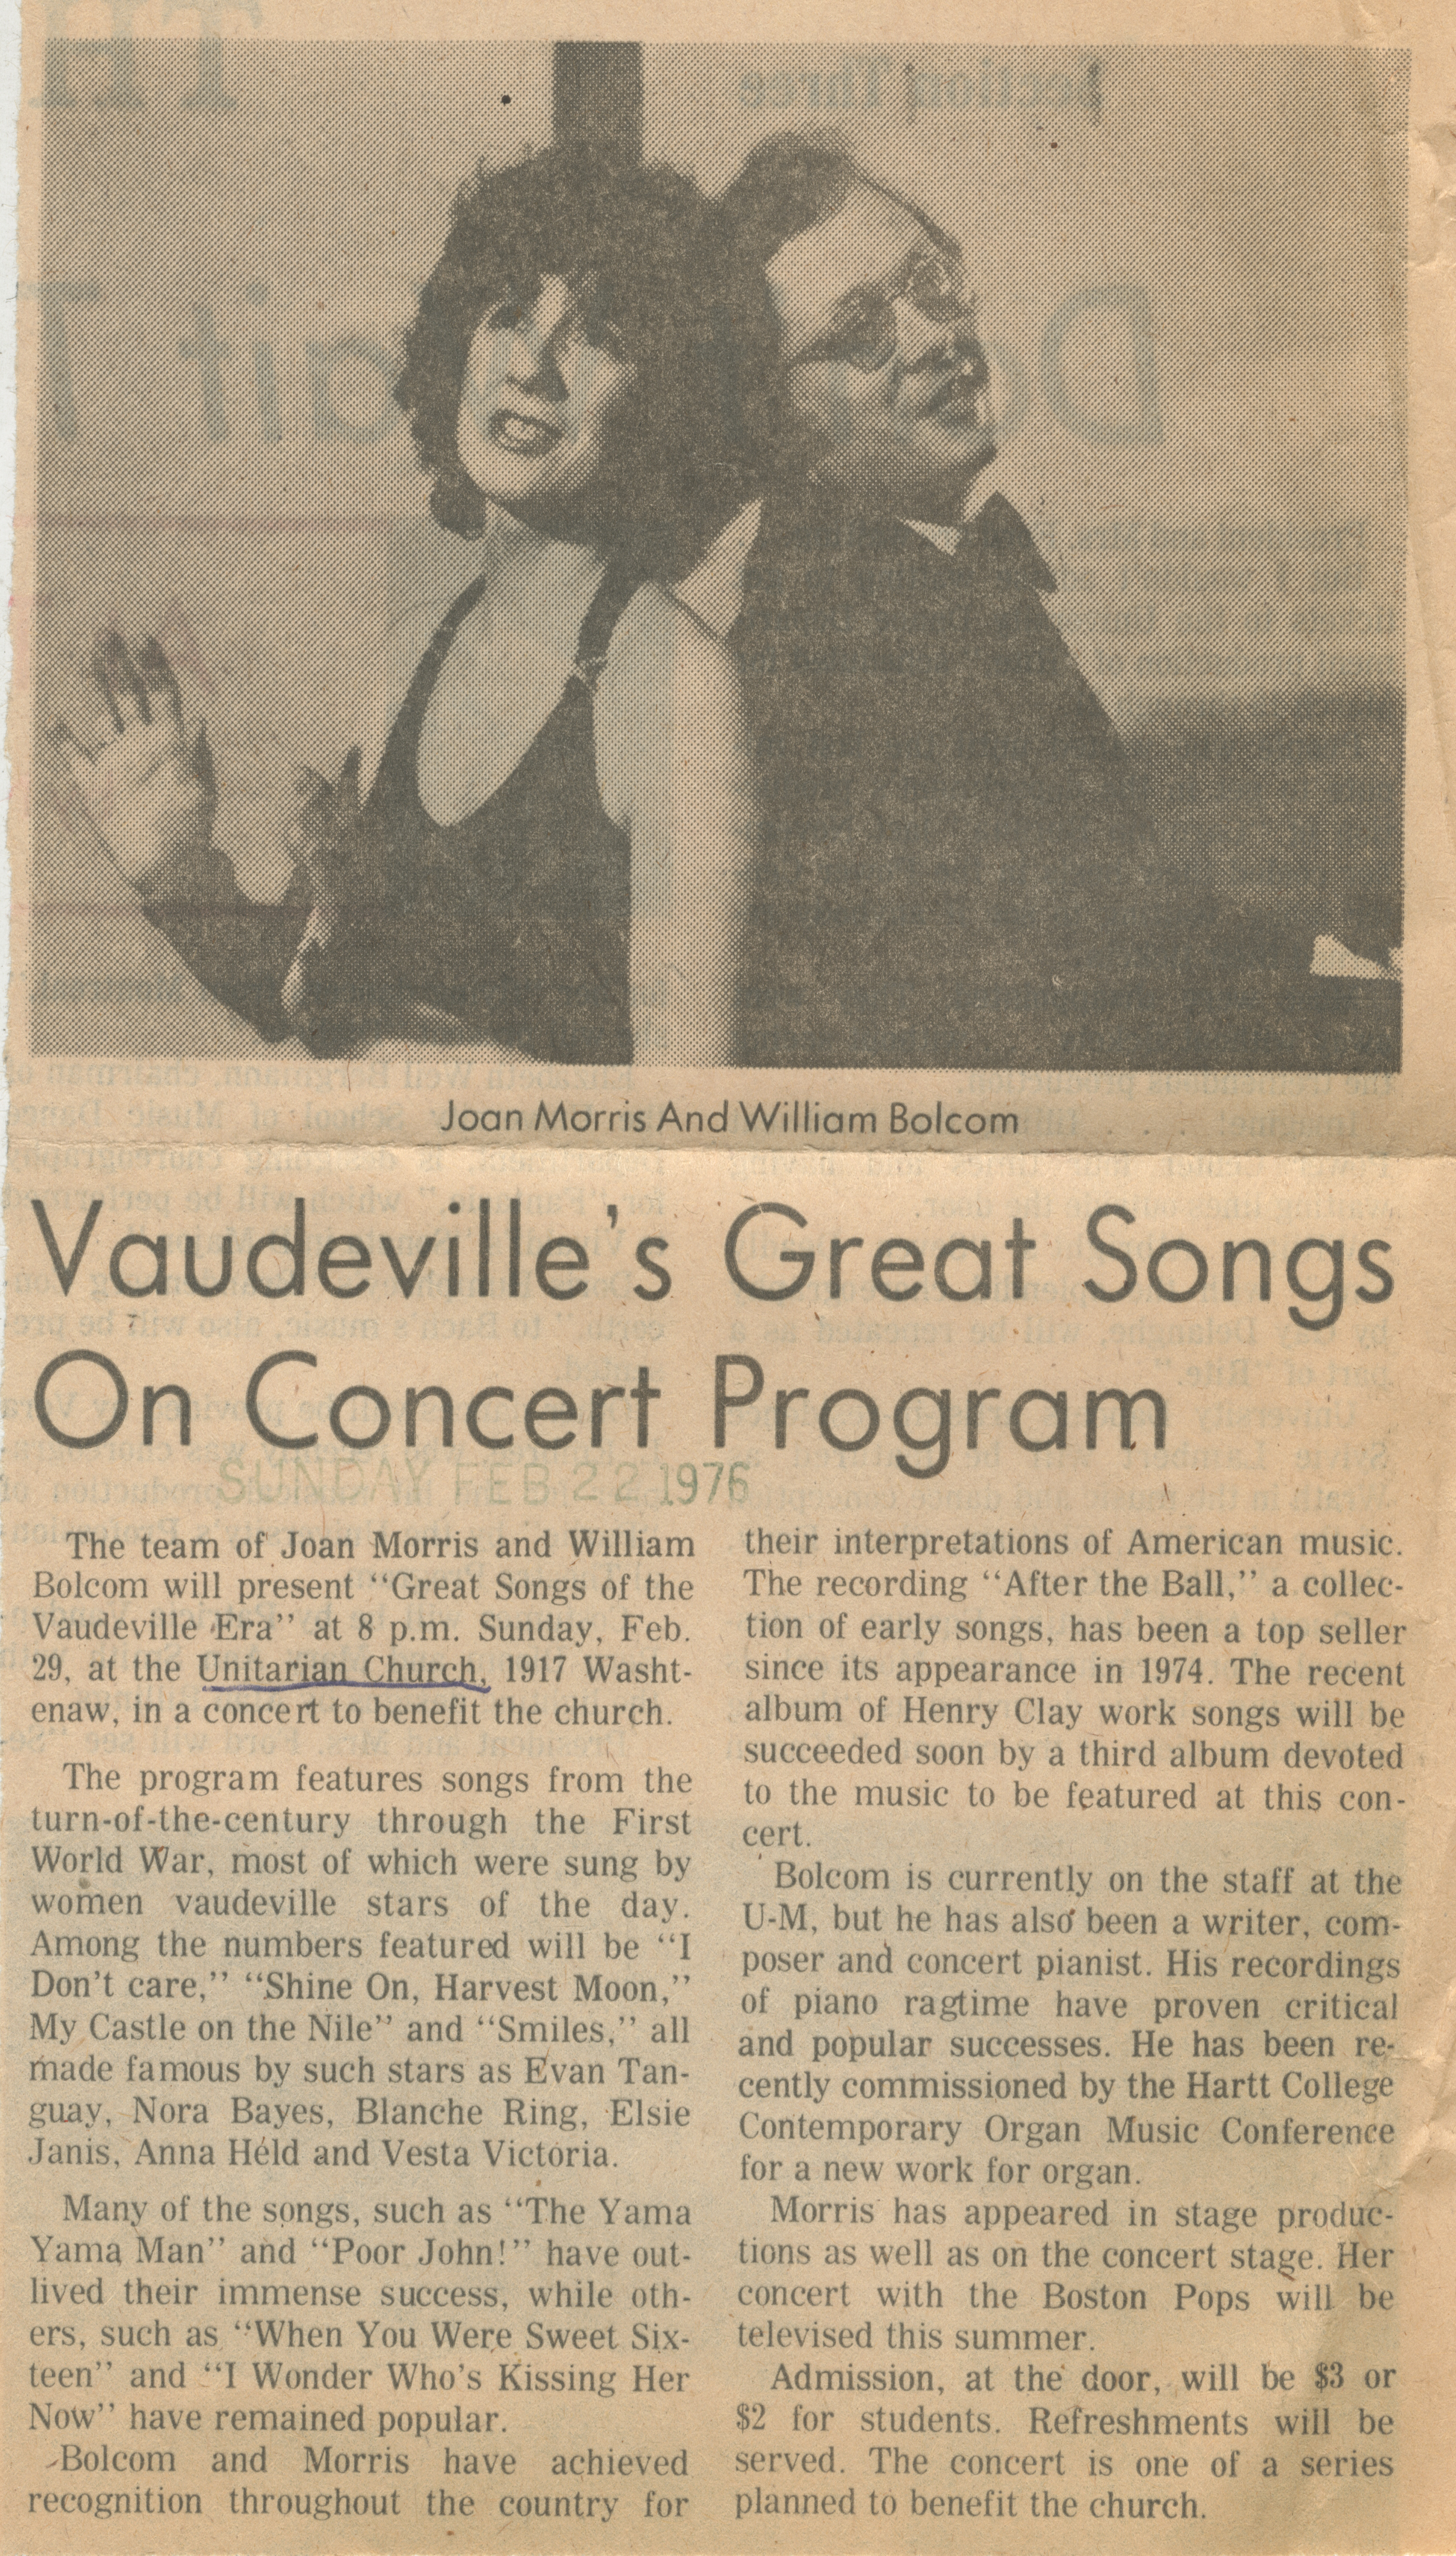 Vaudeville's Great Songs On Concert Program image